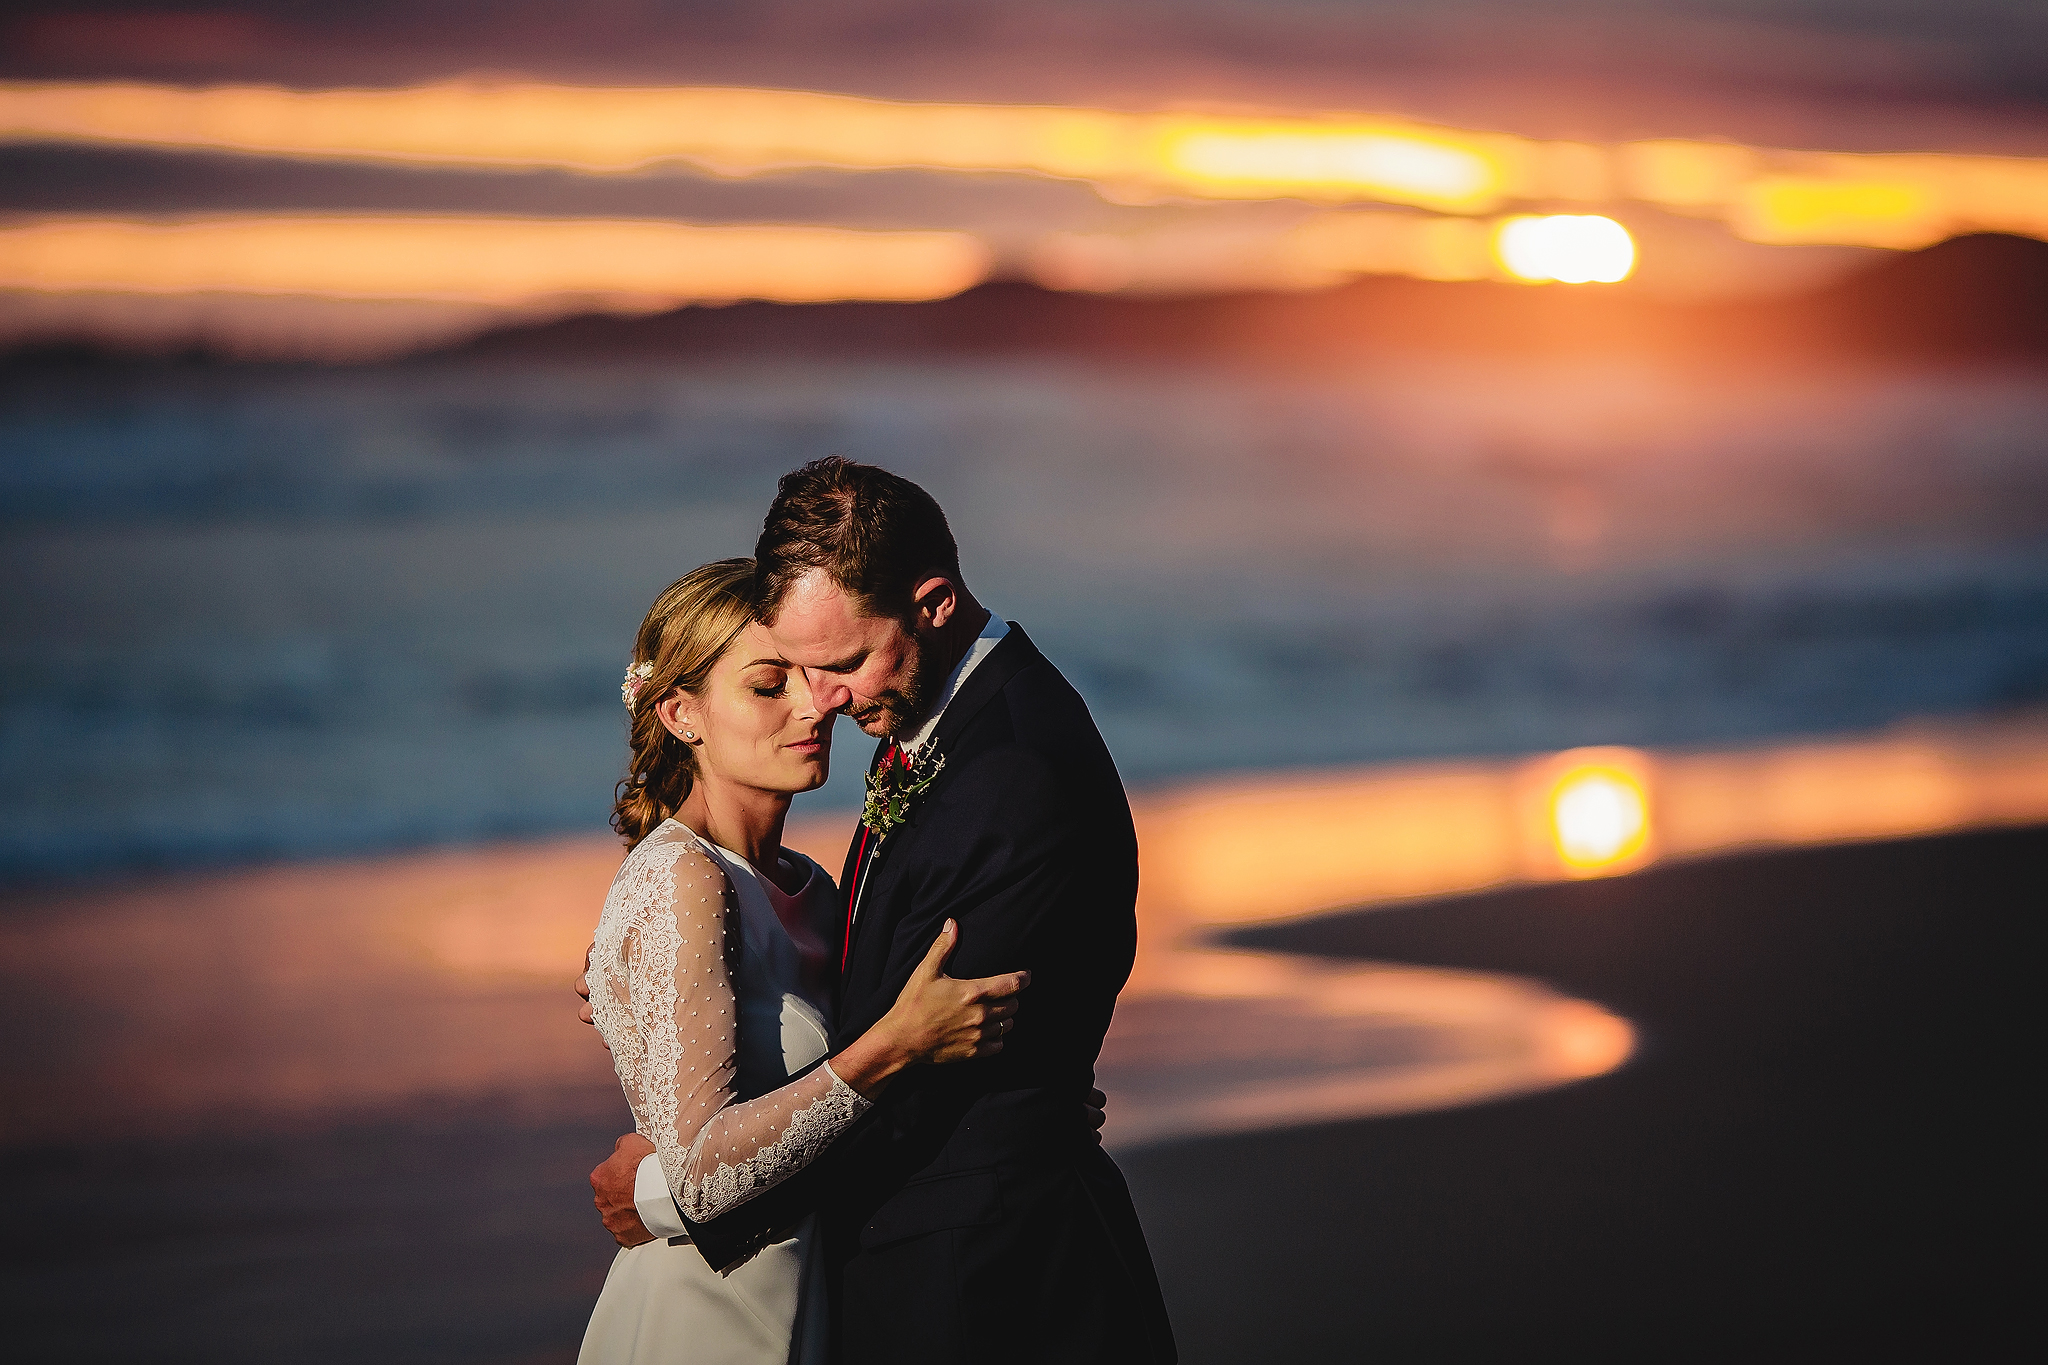 Sunset face to face embrace - photo by Ruan Redelinghuys Photography